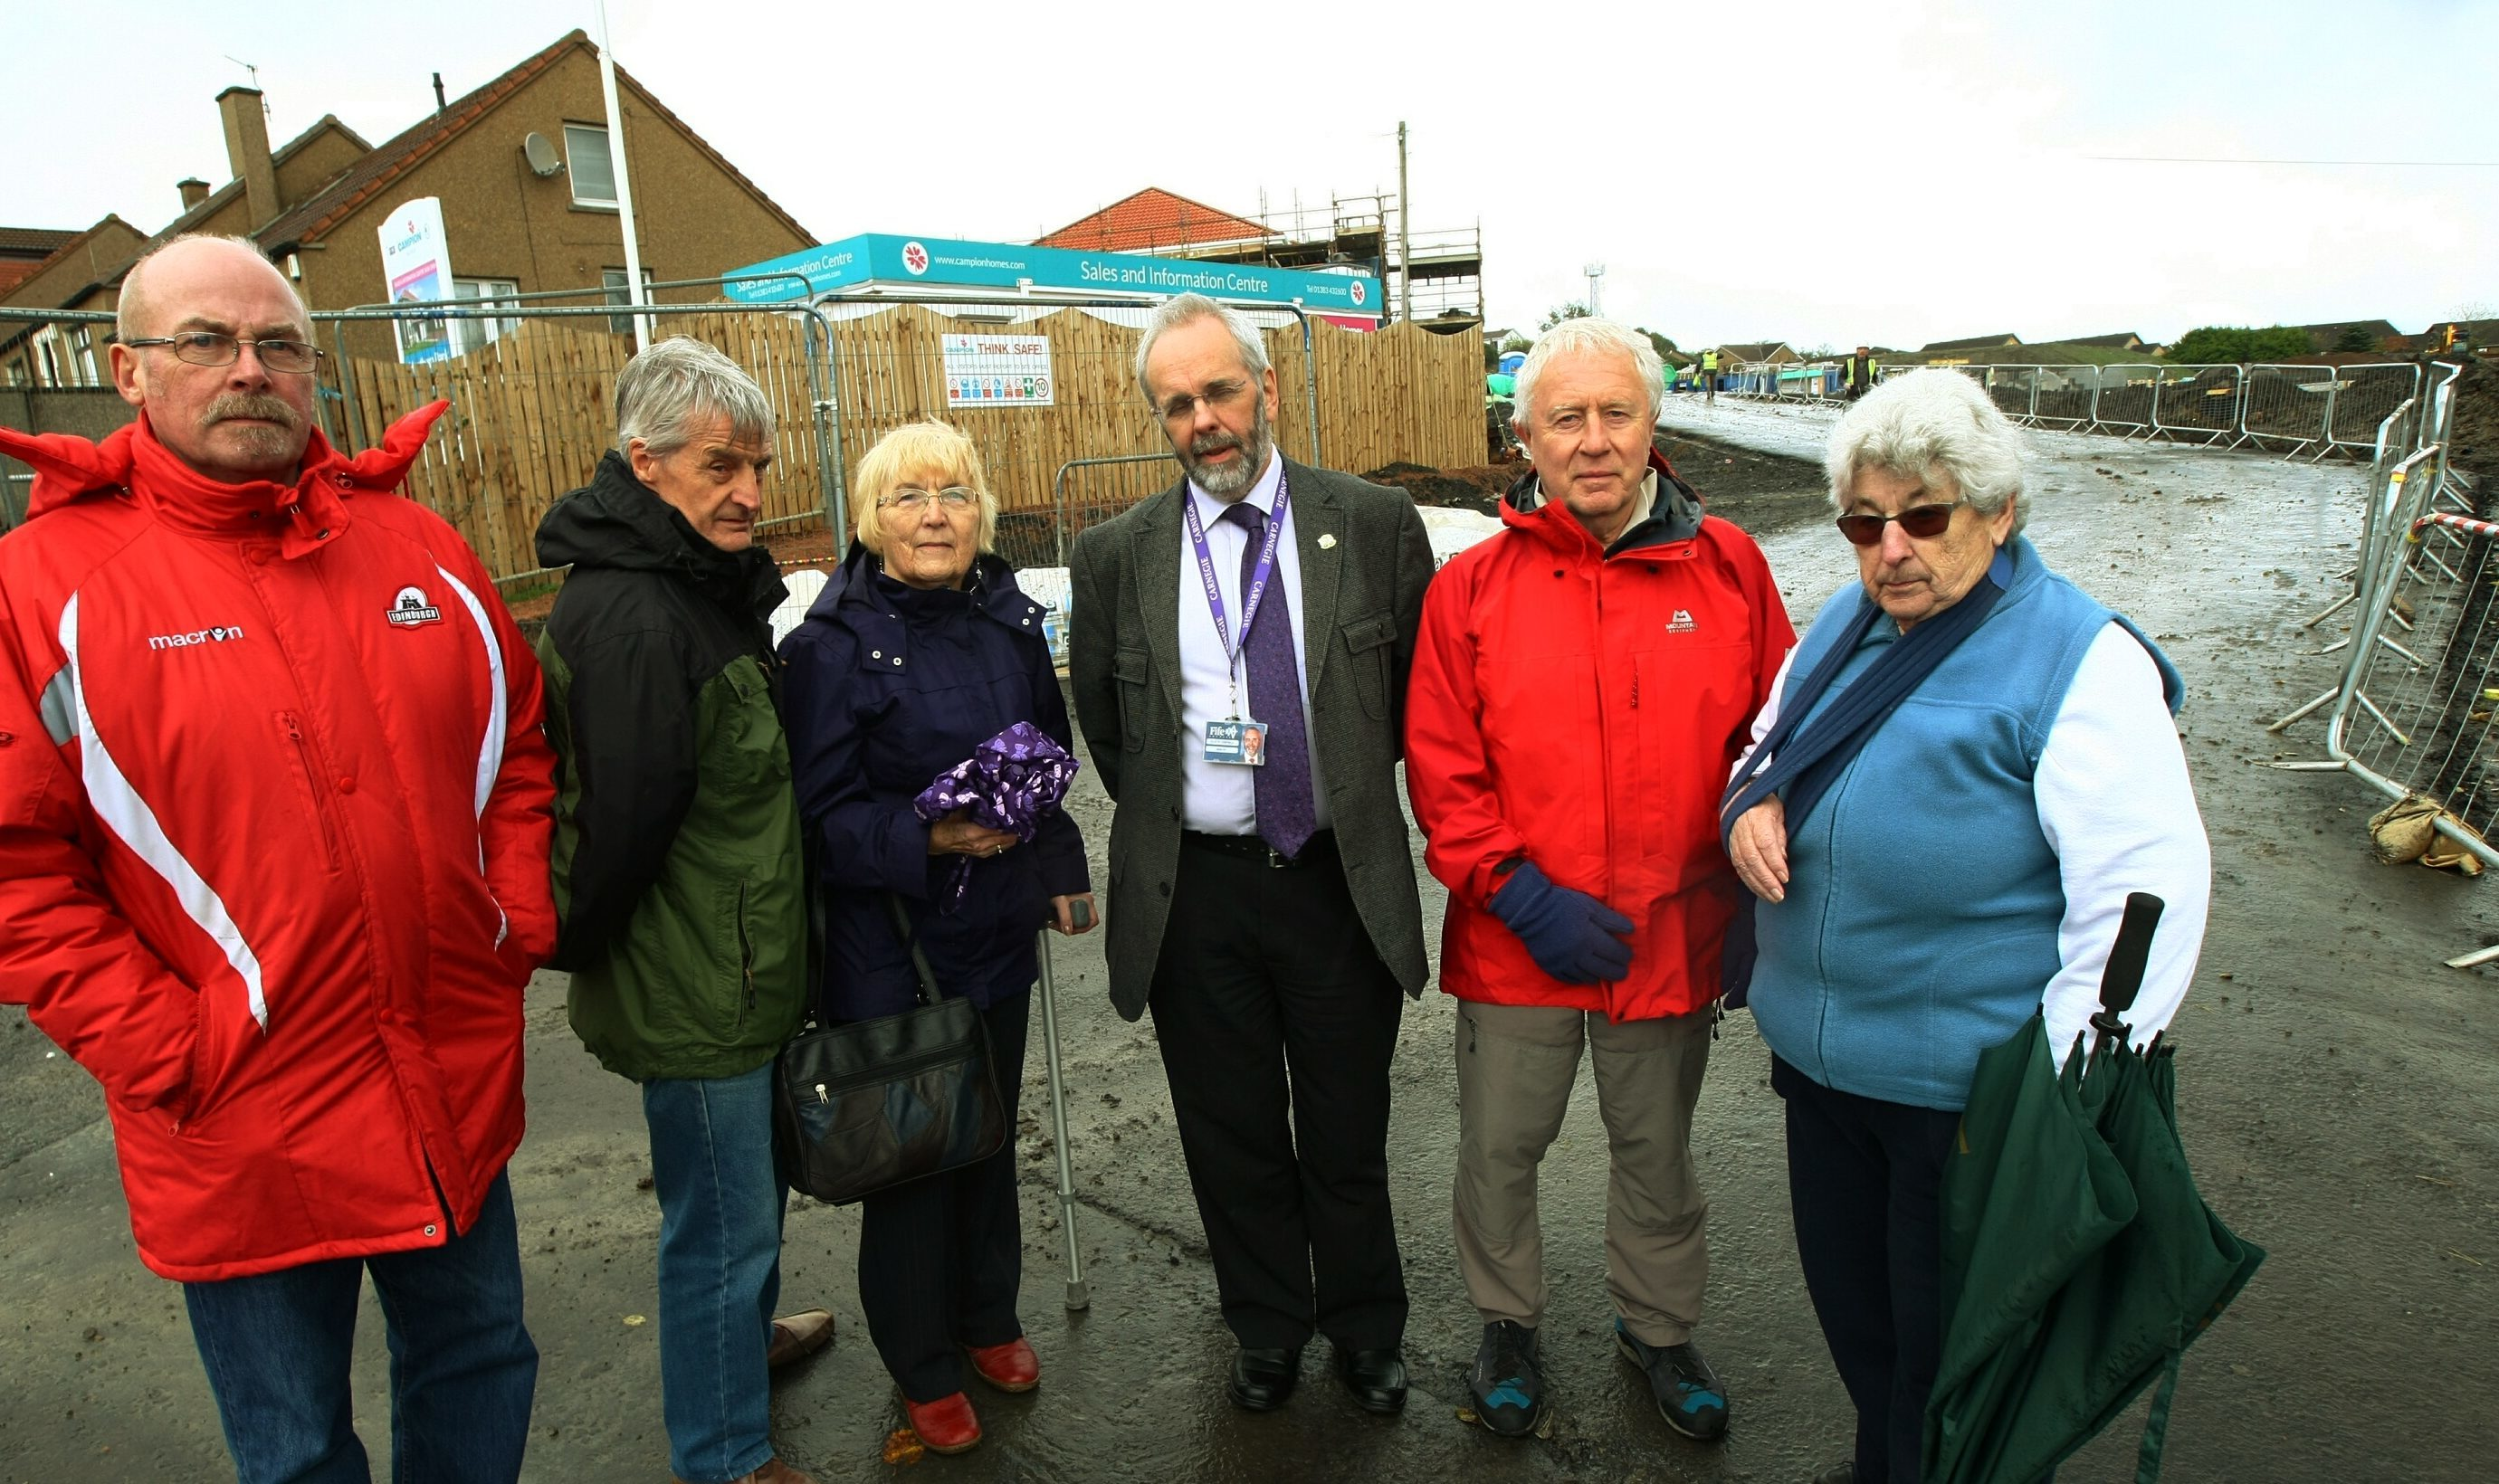 Bellyeoman Community Council secretary John Dudgeon, members Keith and Anne Ormond, Councillor William Campbell, Ken Barker from the community council and its chairperson Wilma Allday.